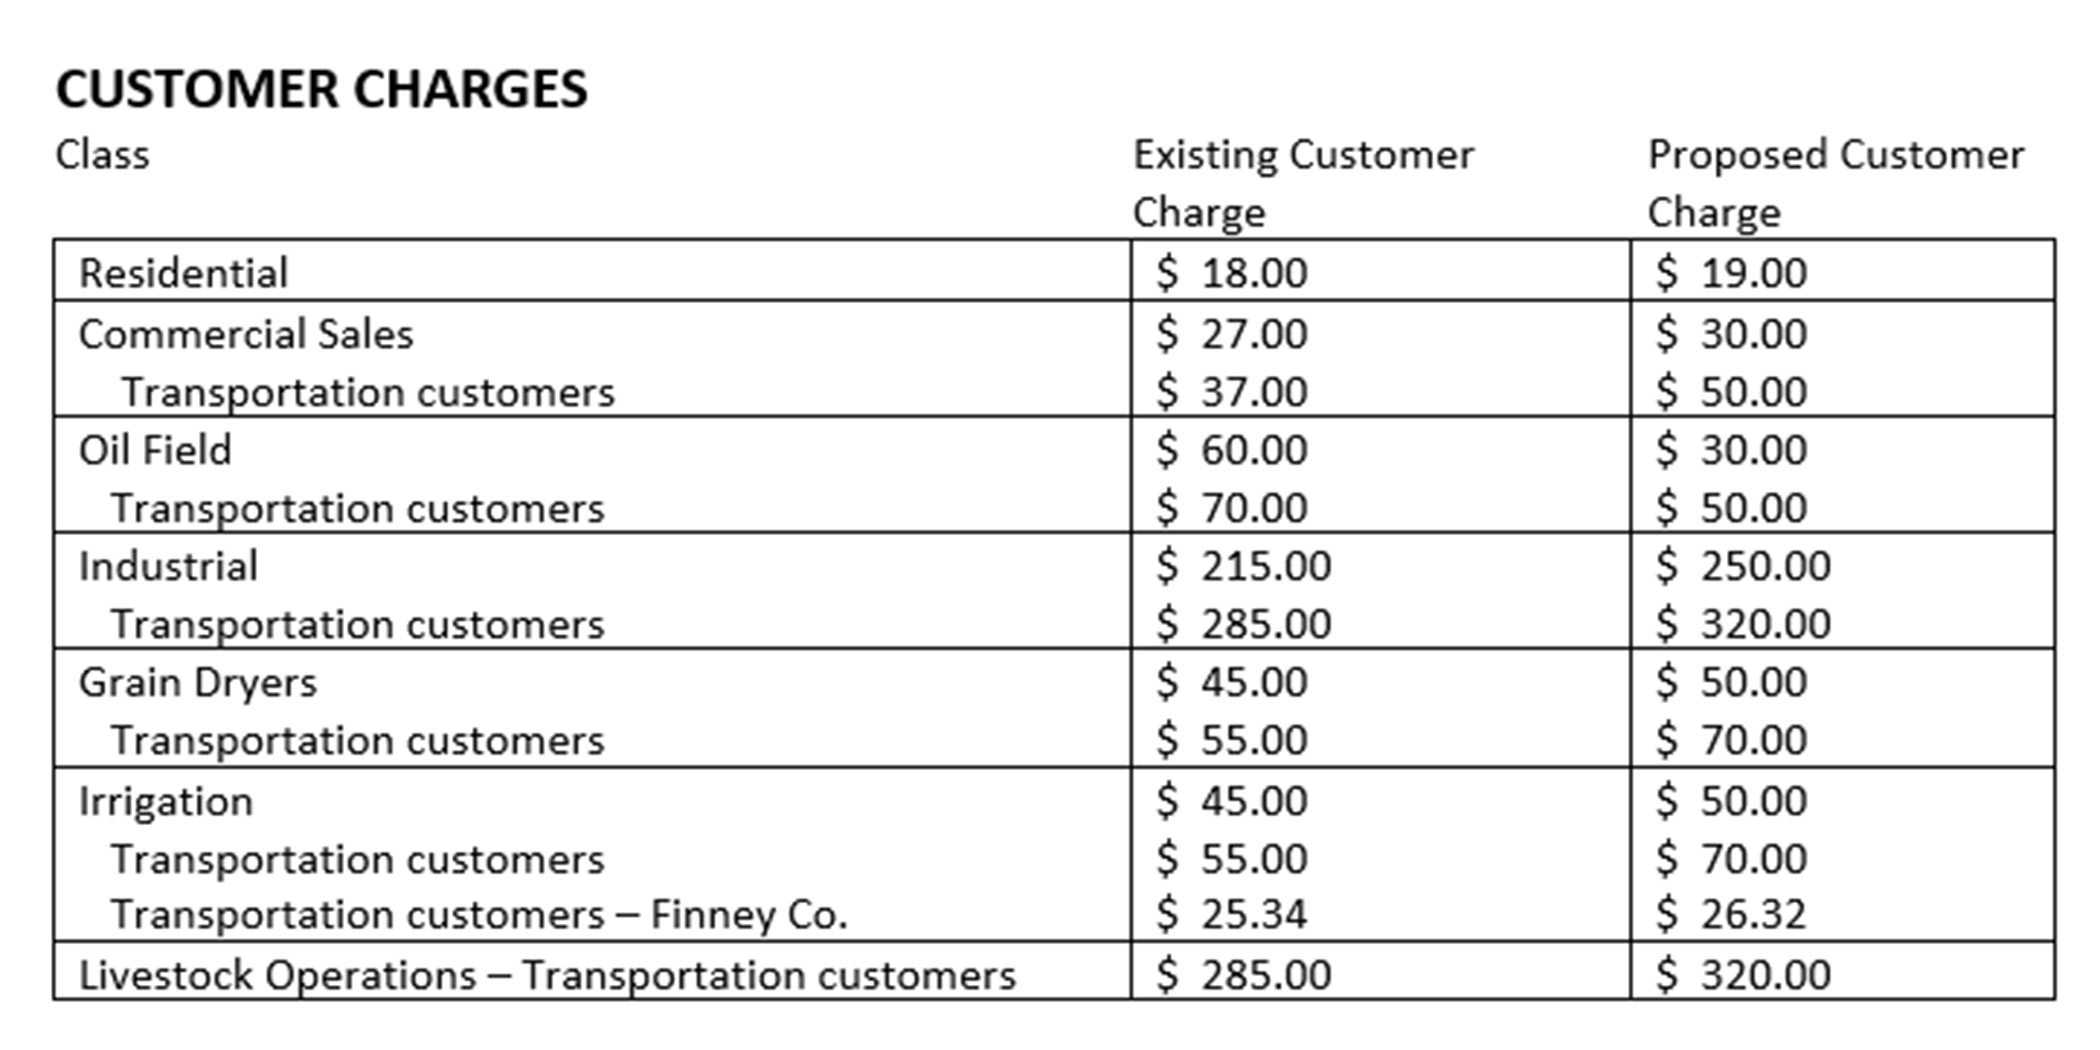 A chart showing a summary of proposed natural gas customer charges.